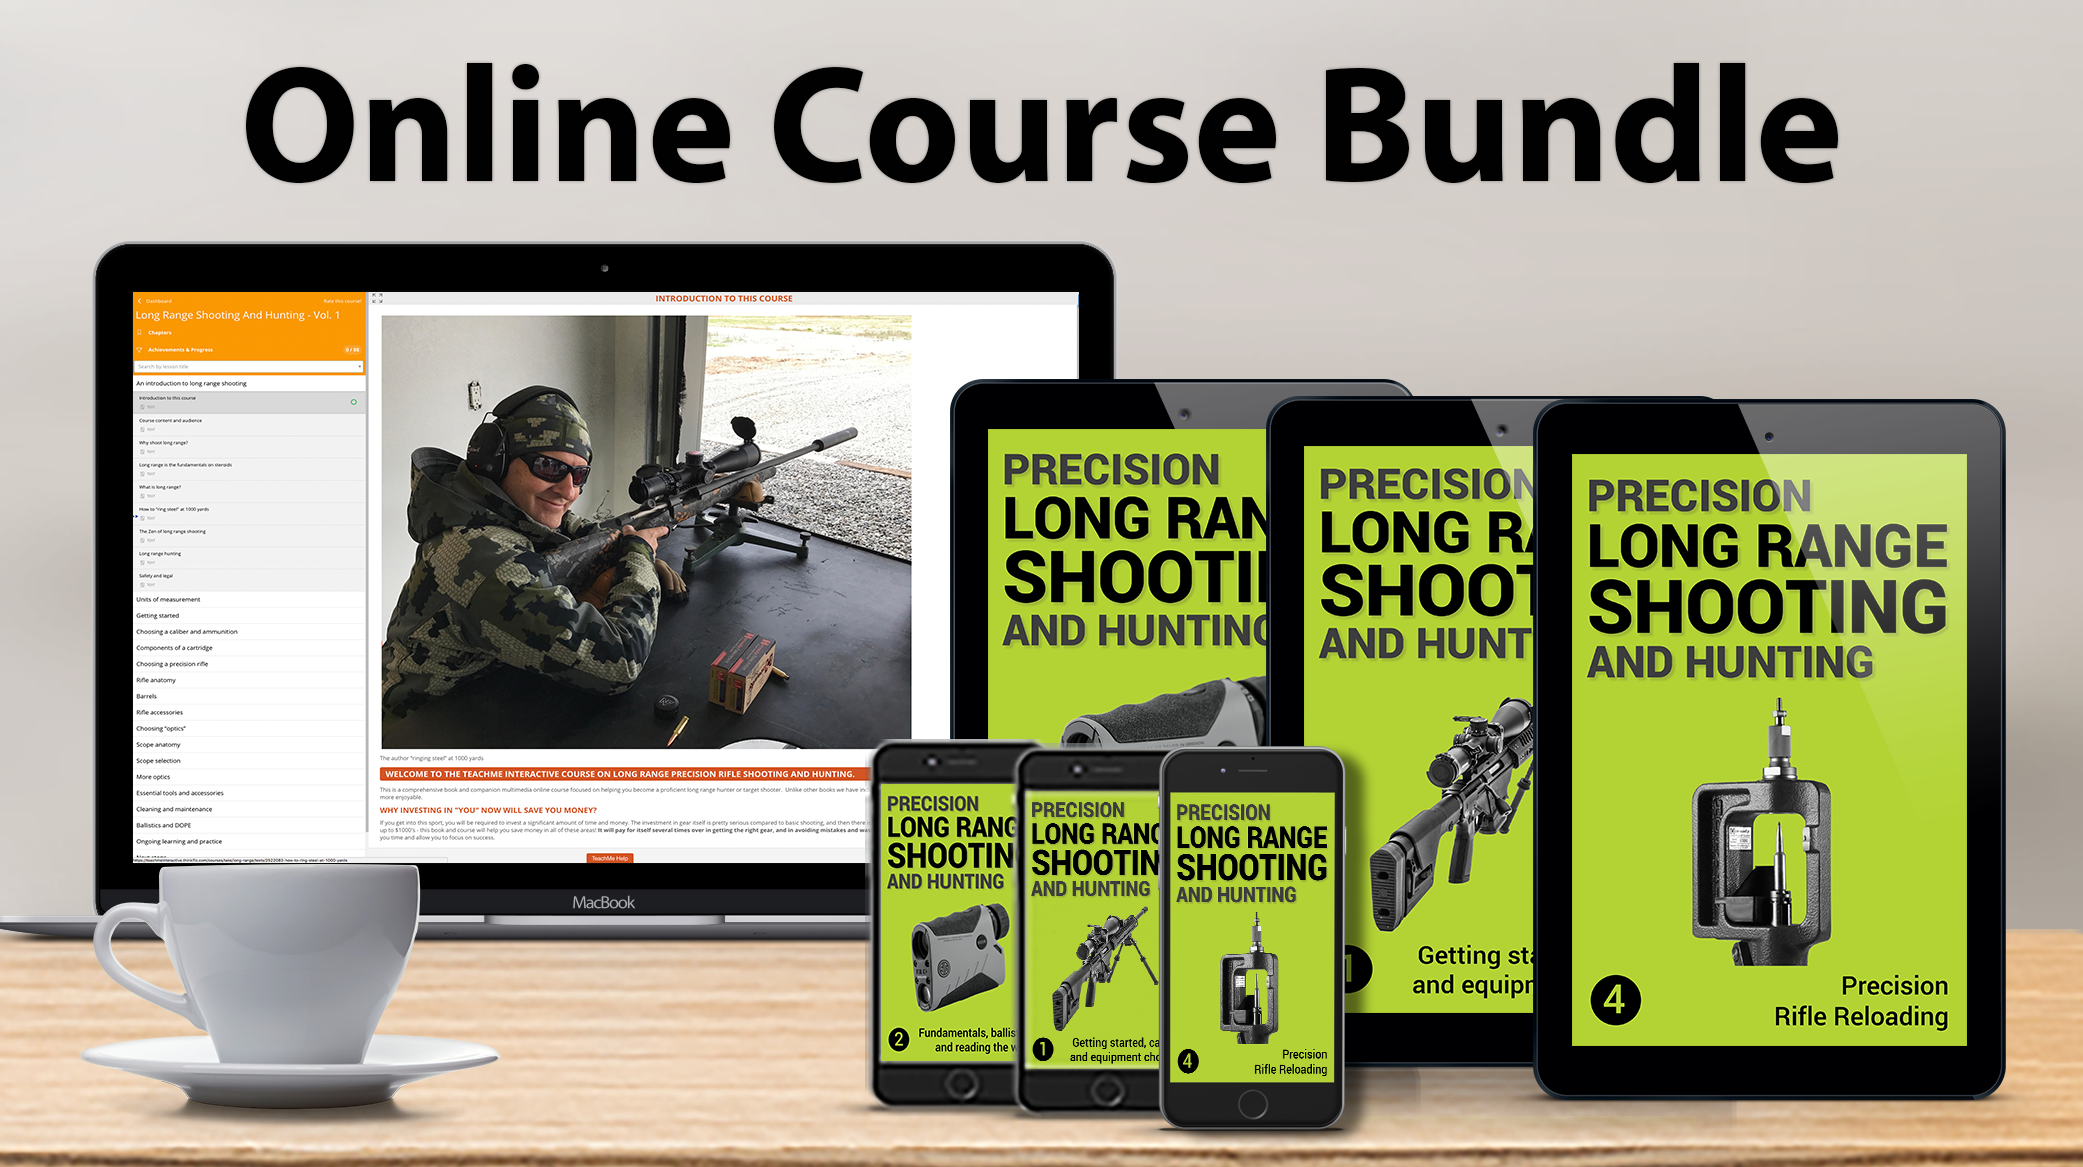 #1 ULTIMATE ONLINE COURSE BUNDLE - LONG RANGE SHOOTING